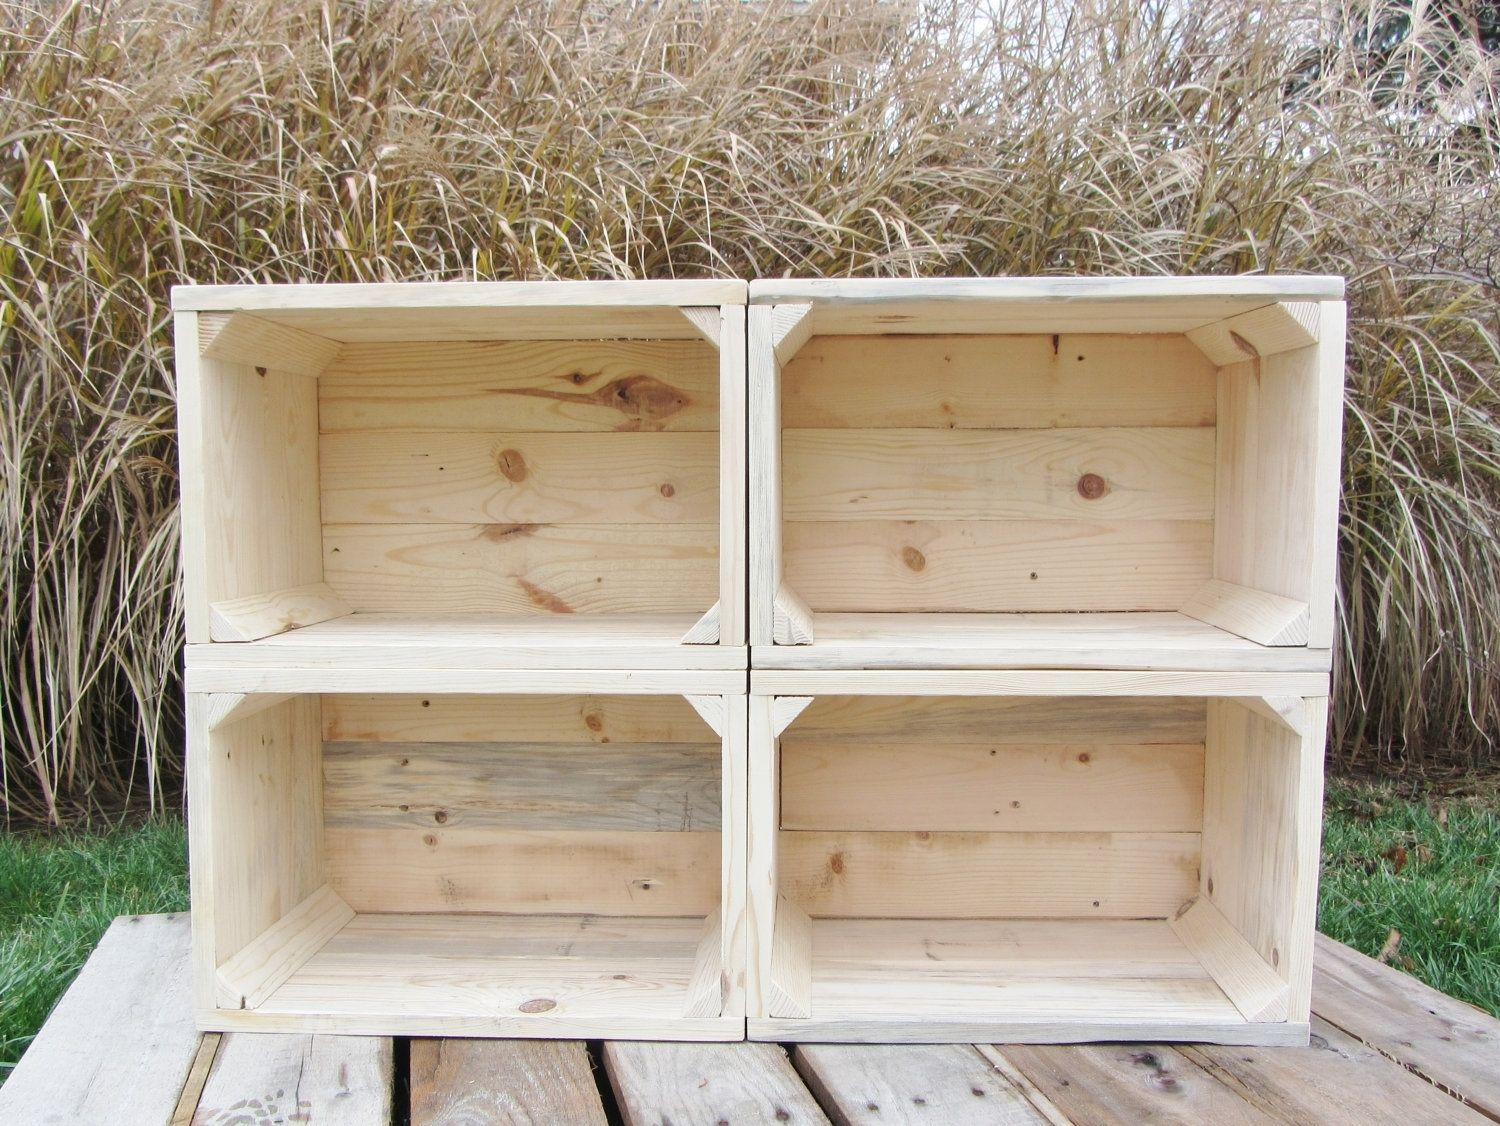 Hand Crafted Small Wood Crate Stackable Made From Reclaimed Wood Pallets Set Of 4 Crate Set By Reclaimed I Wooden Crates With Handles Wood Crates Wooden Crates